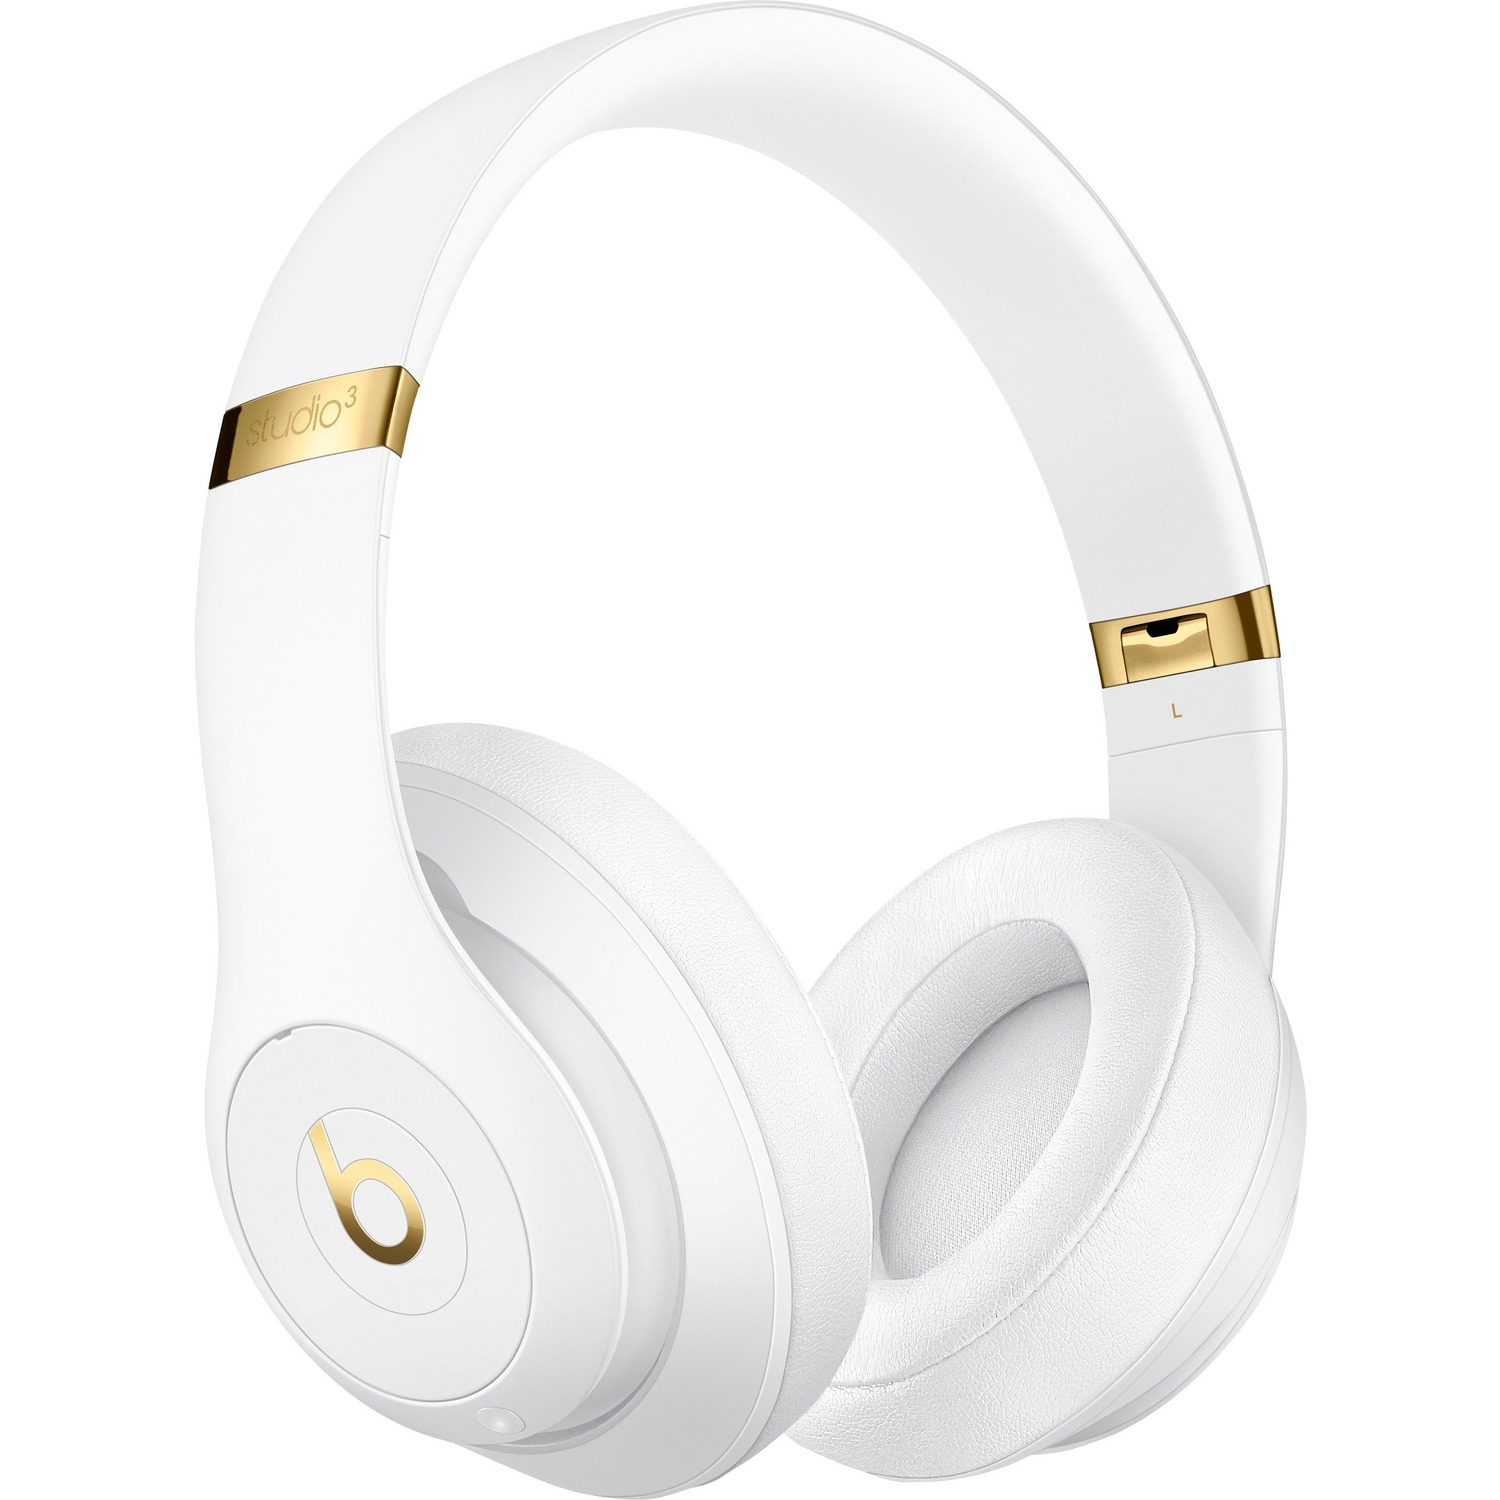 Beats by Dr. Dre Studio3 Wired/Wireless Bluetooth Stereo Headset - Over-the-head - Circumaural - White